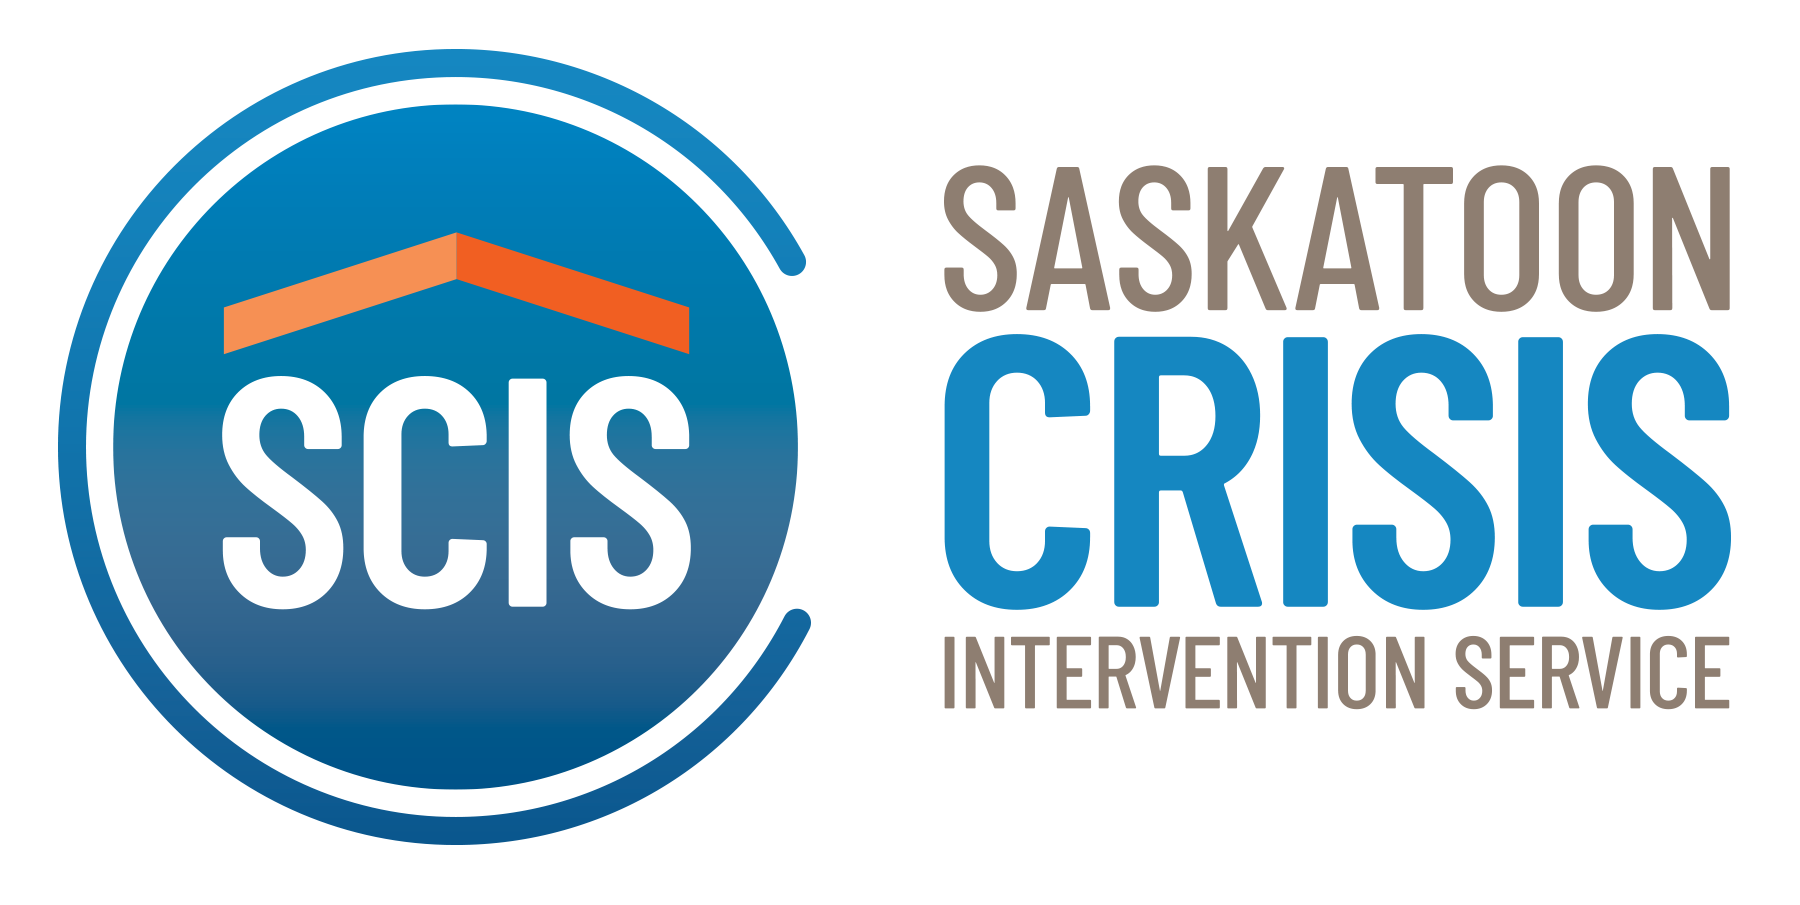 Saskatoon Crisis Intervention Service